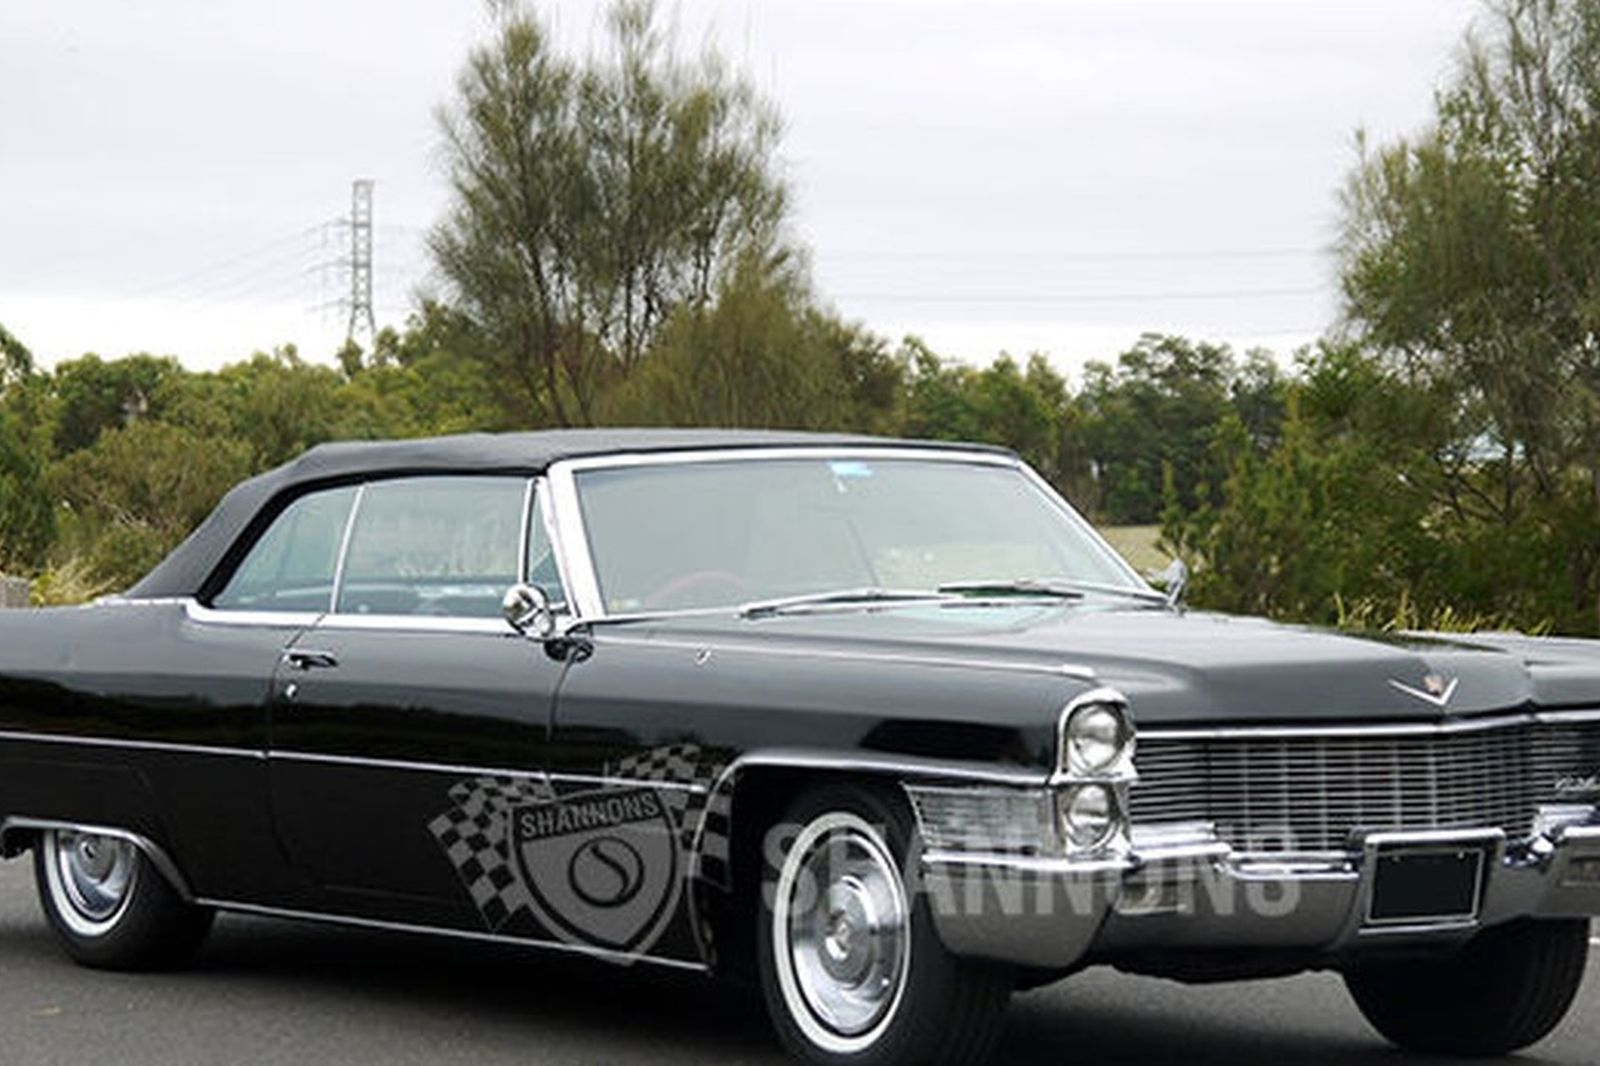 Sold Cadillac Deville Convertible Rhd Auctions Lot 10 Shannons